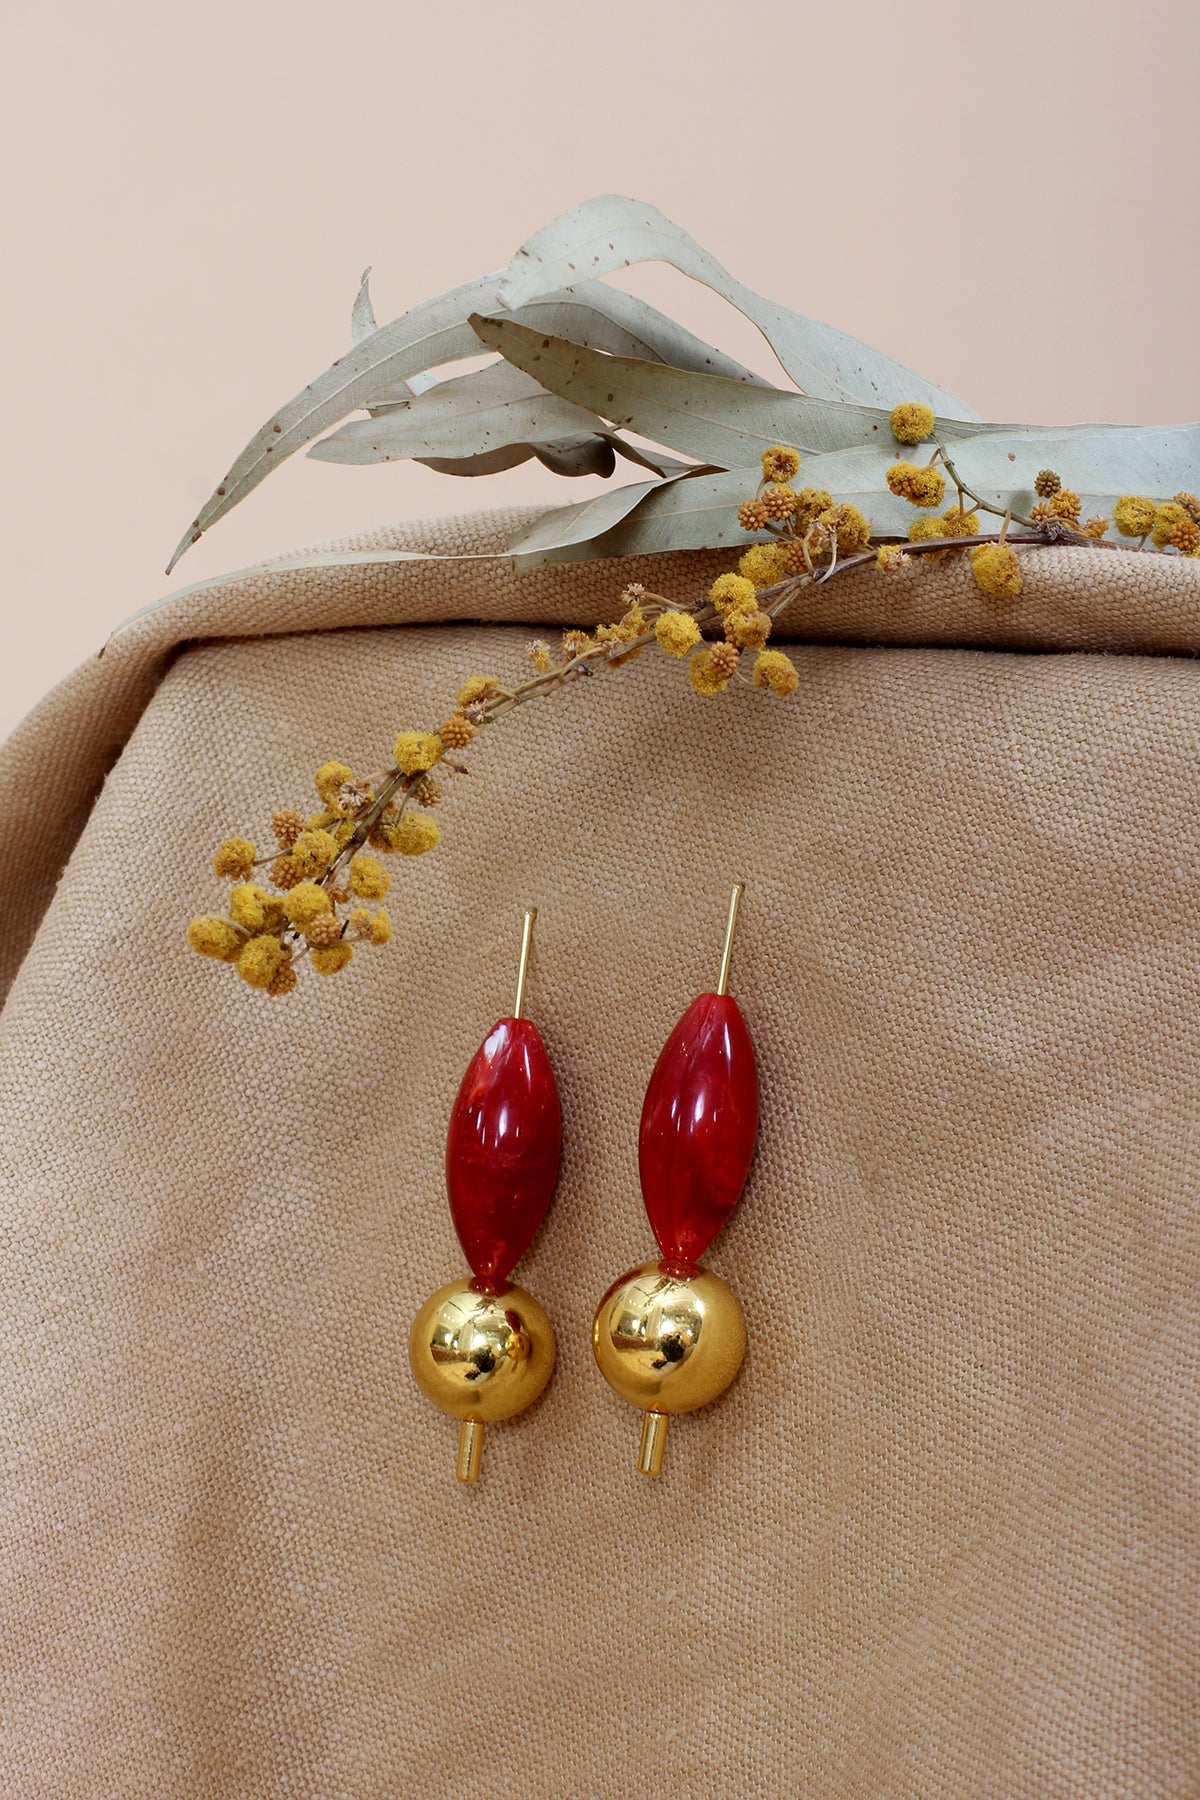 THE RED MISCELLANEA EARRINGS